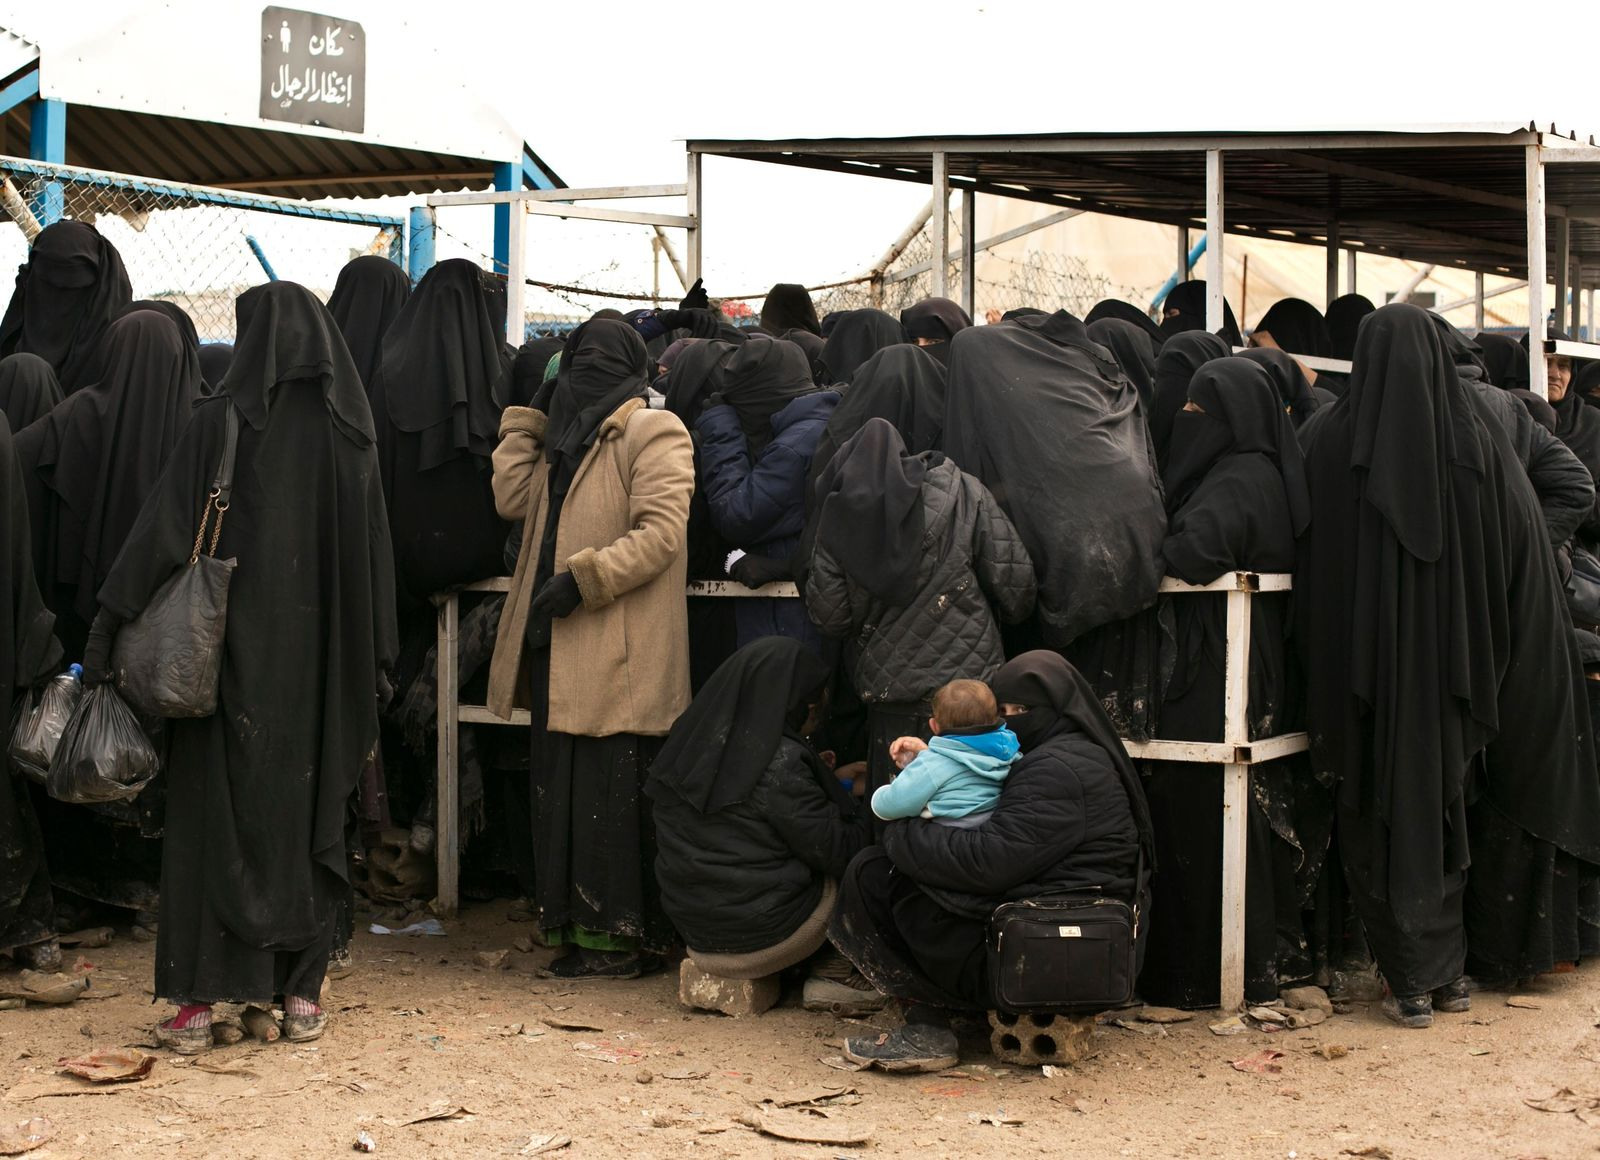 FILE - In this March 31, 2019 file photo, women residents from former Islamic State-held areas in Syria line up for aid supplies at Al-Hol camp in Hassakeh province, Syria. Syrian Kurdish forces said Monday, Oct. 28, 2019 they are beefing up security in prisons and detention facilities where tens of thousands of Islamic State militants and supporters are held, including foreigners, following the killing of the extremist group's leader. (AP Photo/Maya Alleruzzo, File)